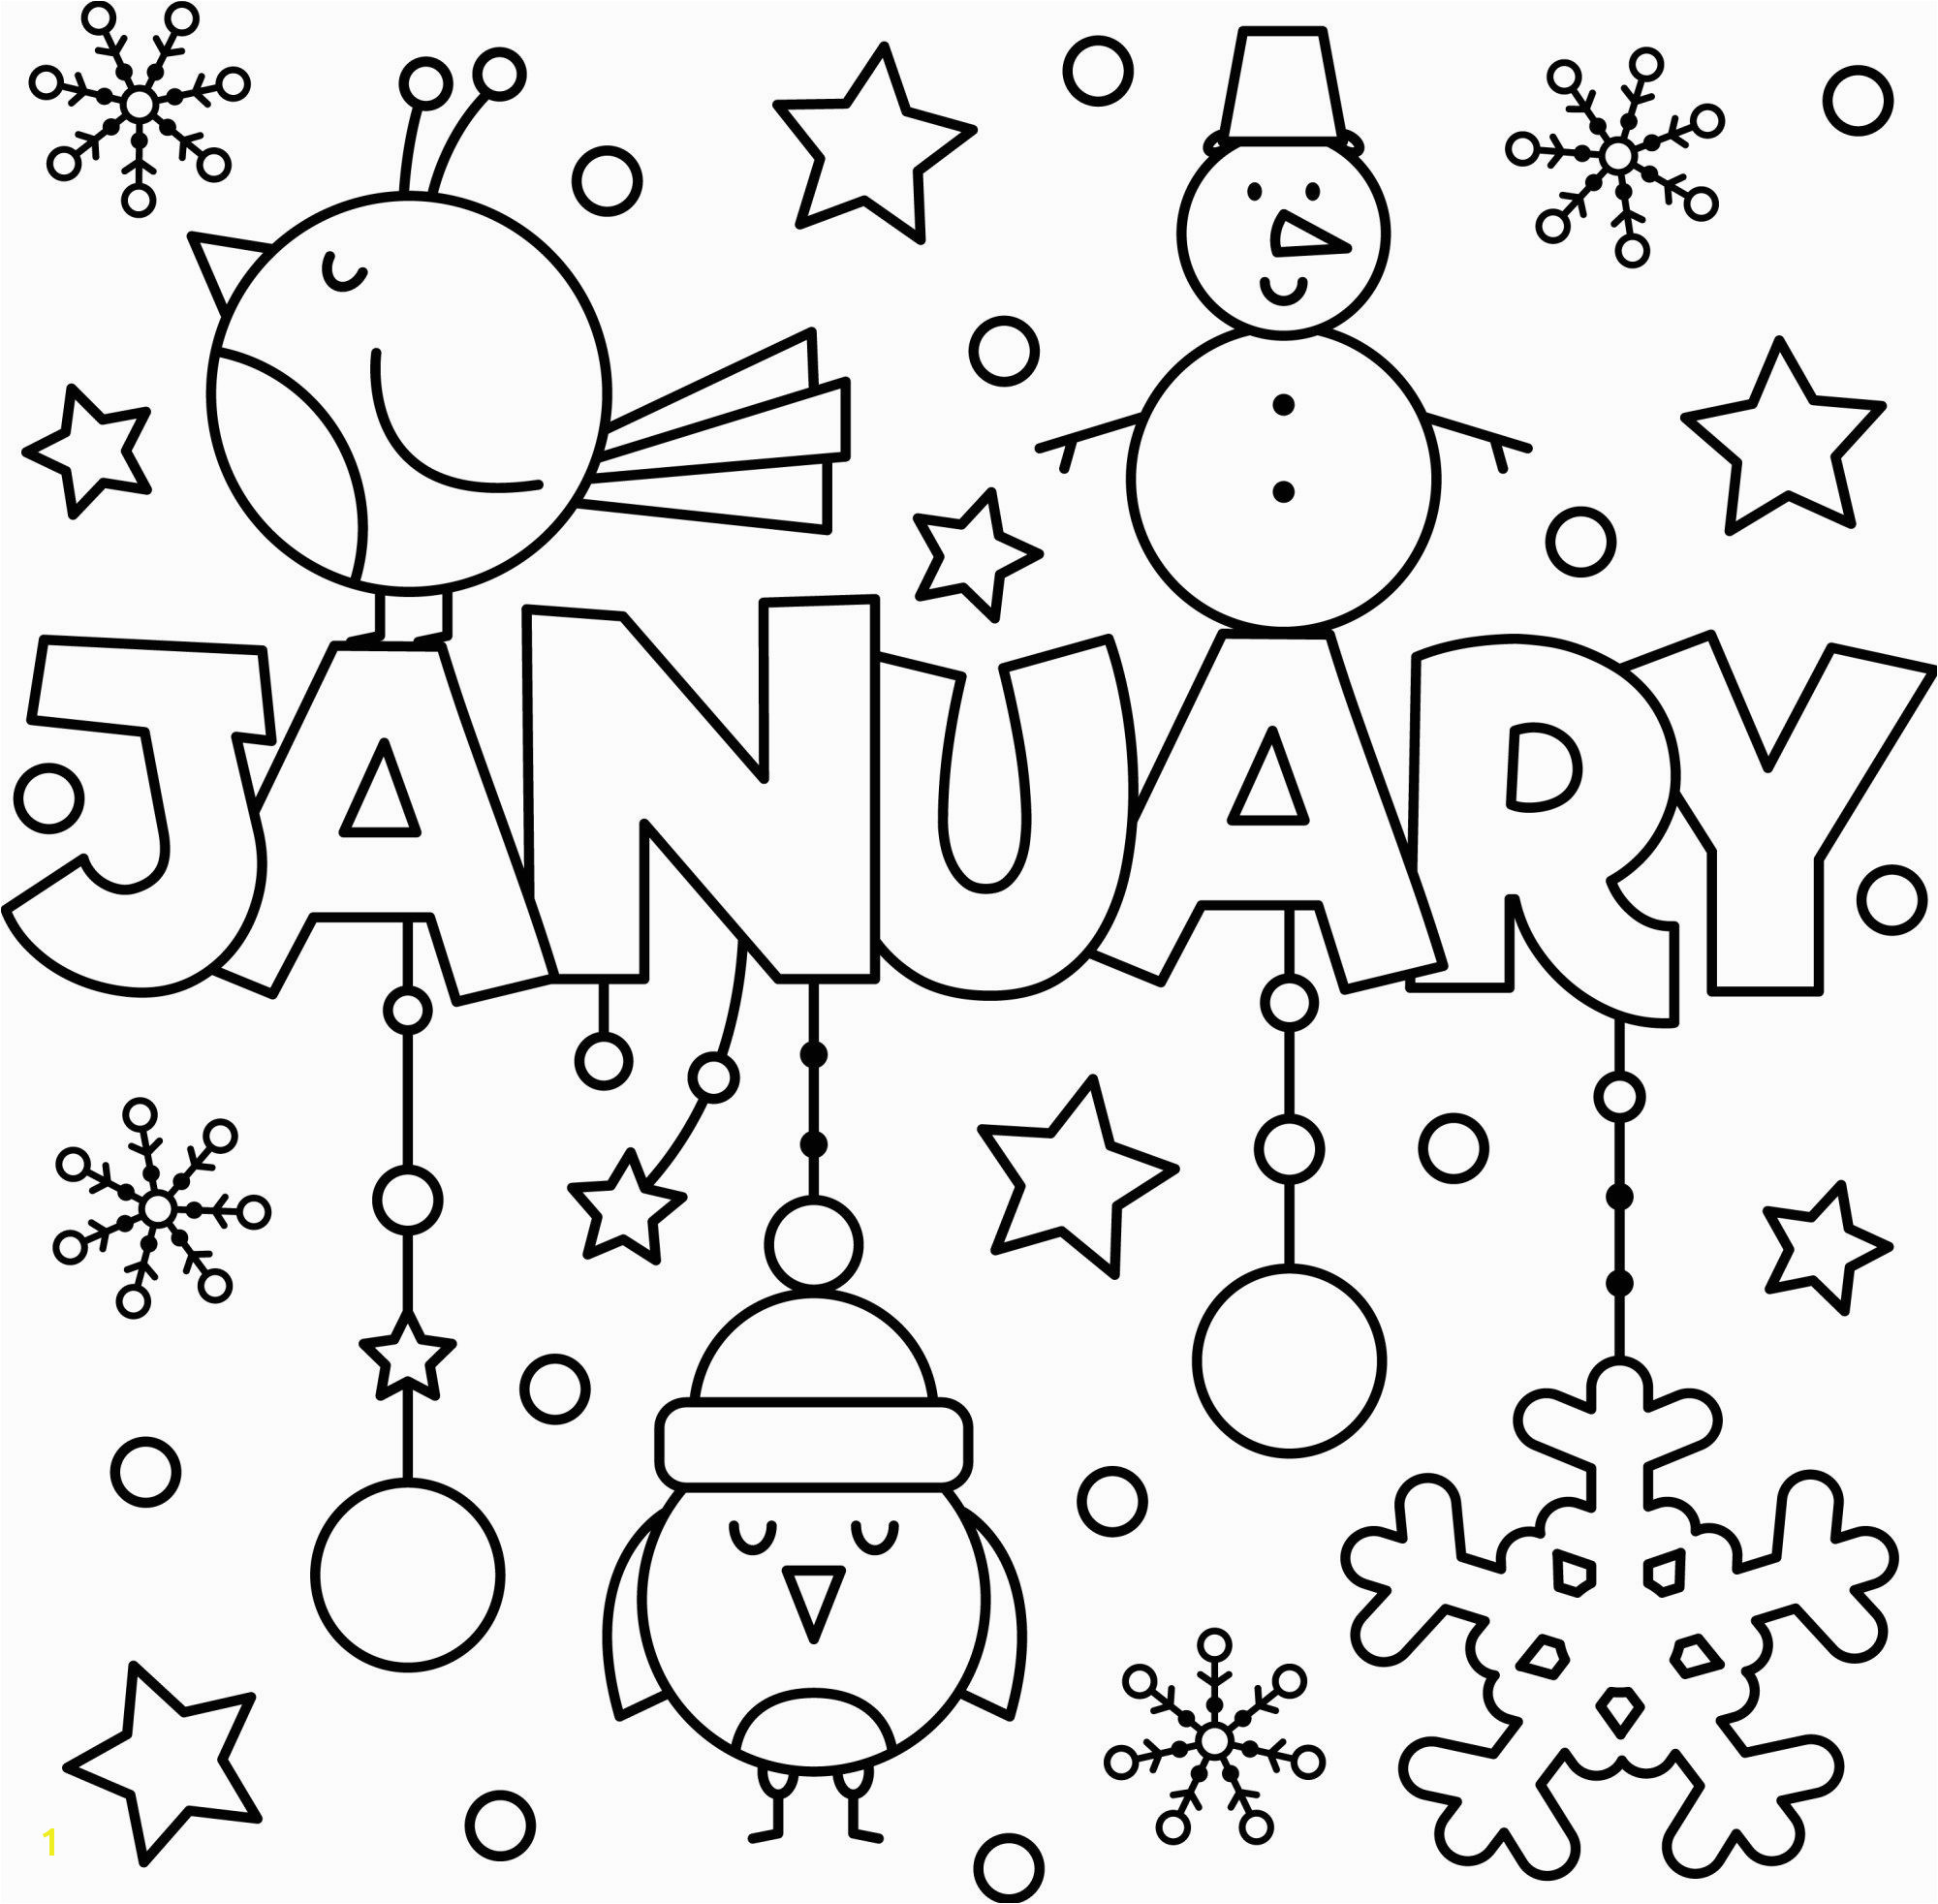 January colouring page printable